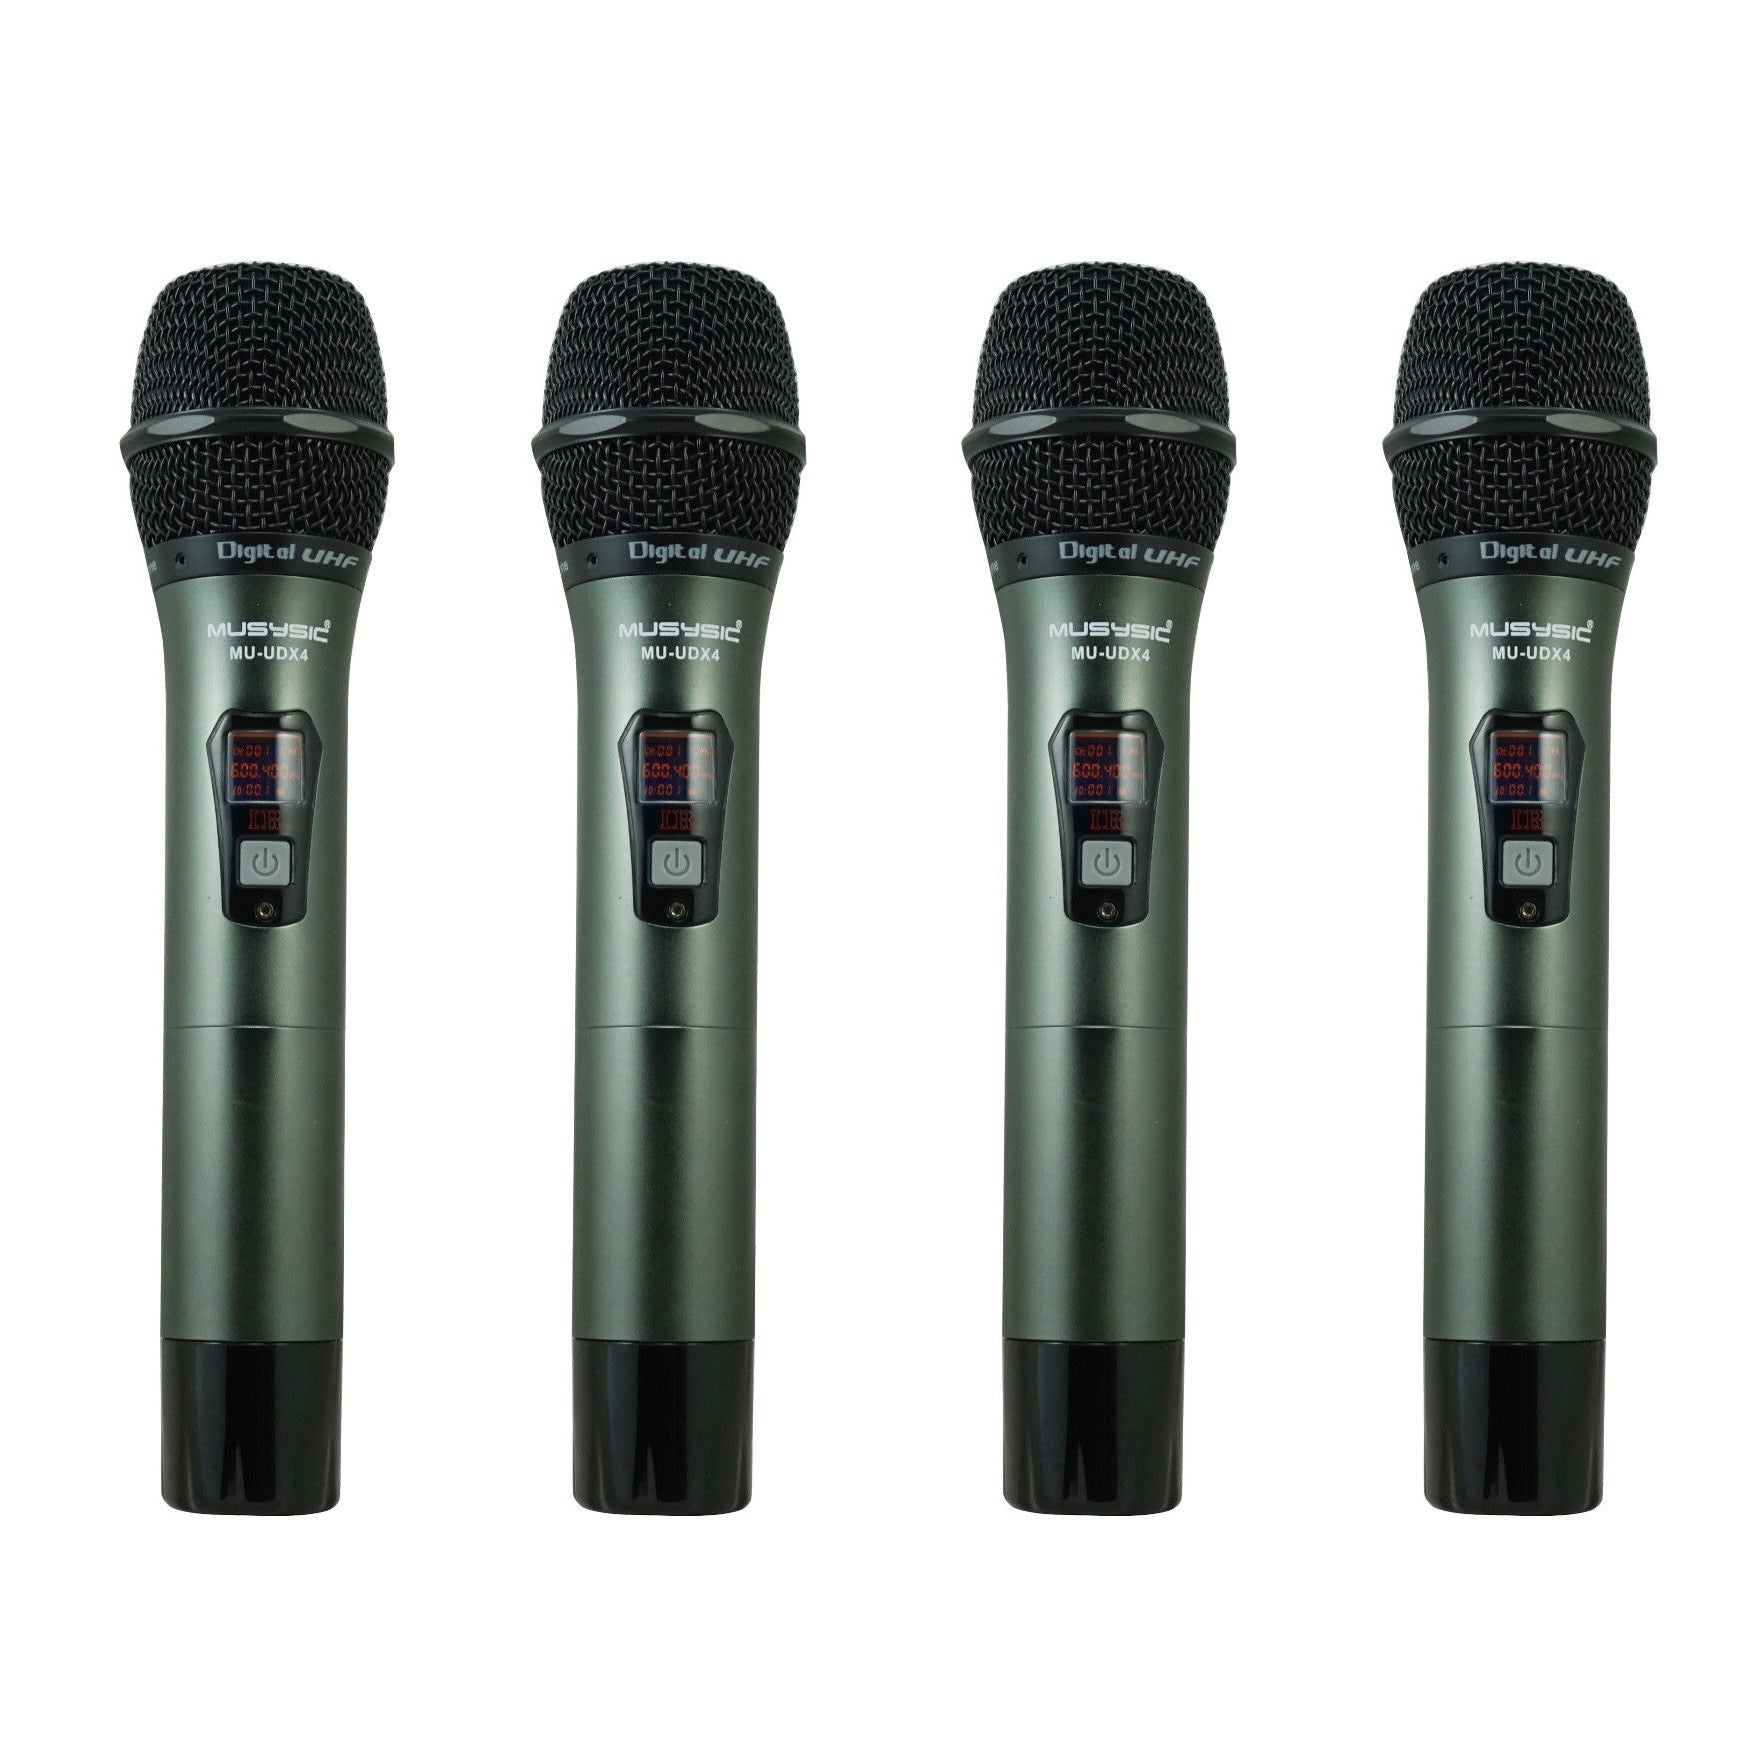 4 channel uhf diversity wireless handheld microphone system 4x40 fq musysic. Black Bedroom Furniture Sets. Home Design Ideas